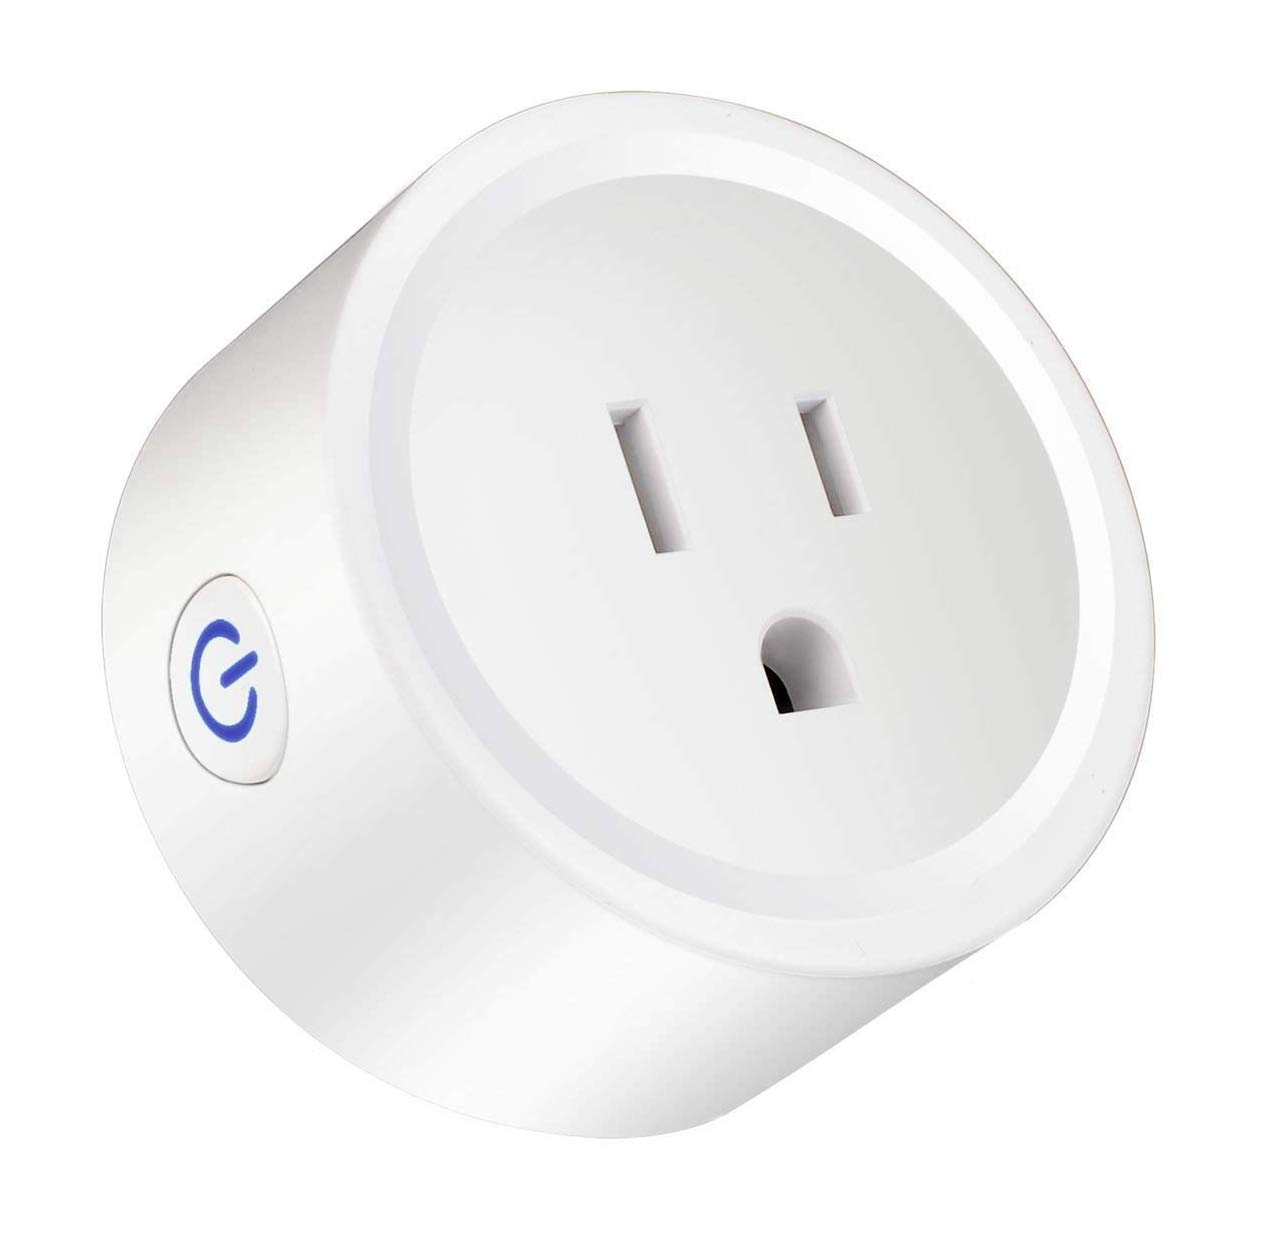 [Upgraded Version] Mini Smart Plug socket 2 pack Wifi Smart Outlet Switch Timer Work with Amazon Alexa Echo Dot Google Home/Assistant IFTTT No Hub Required Control Your Electric Devices from Anywhere